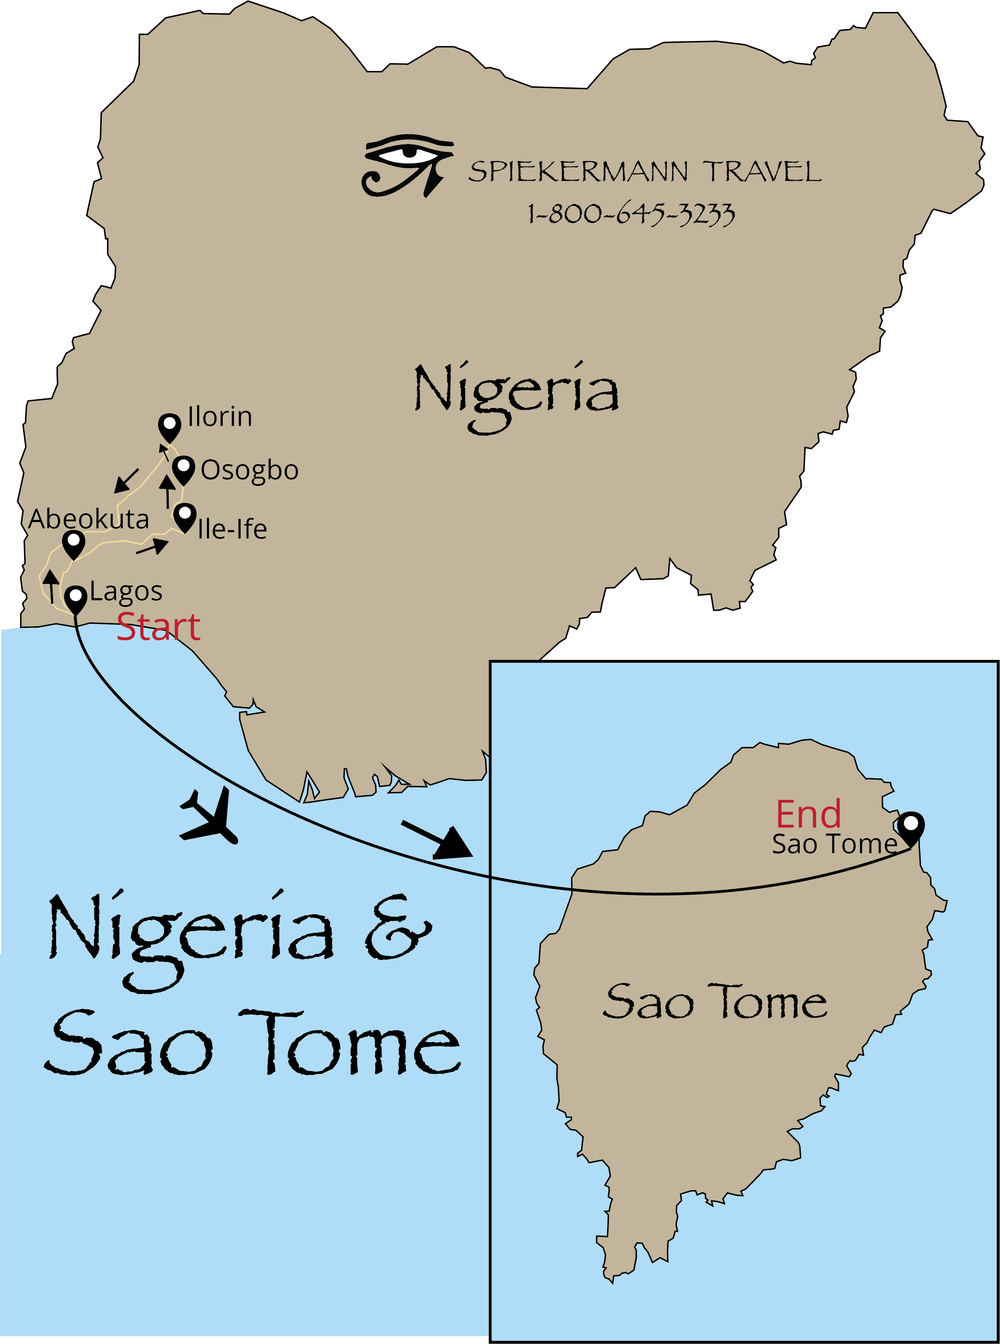 cape verde & Sao tome.png